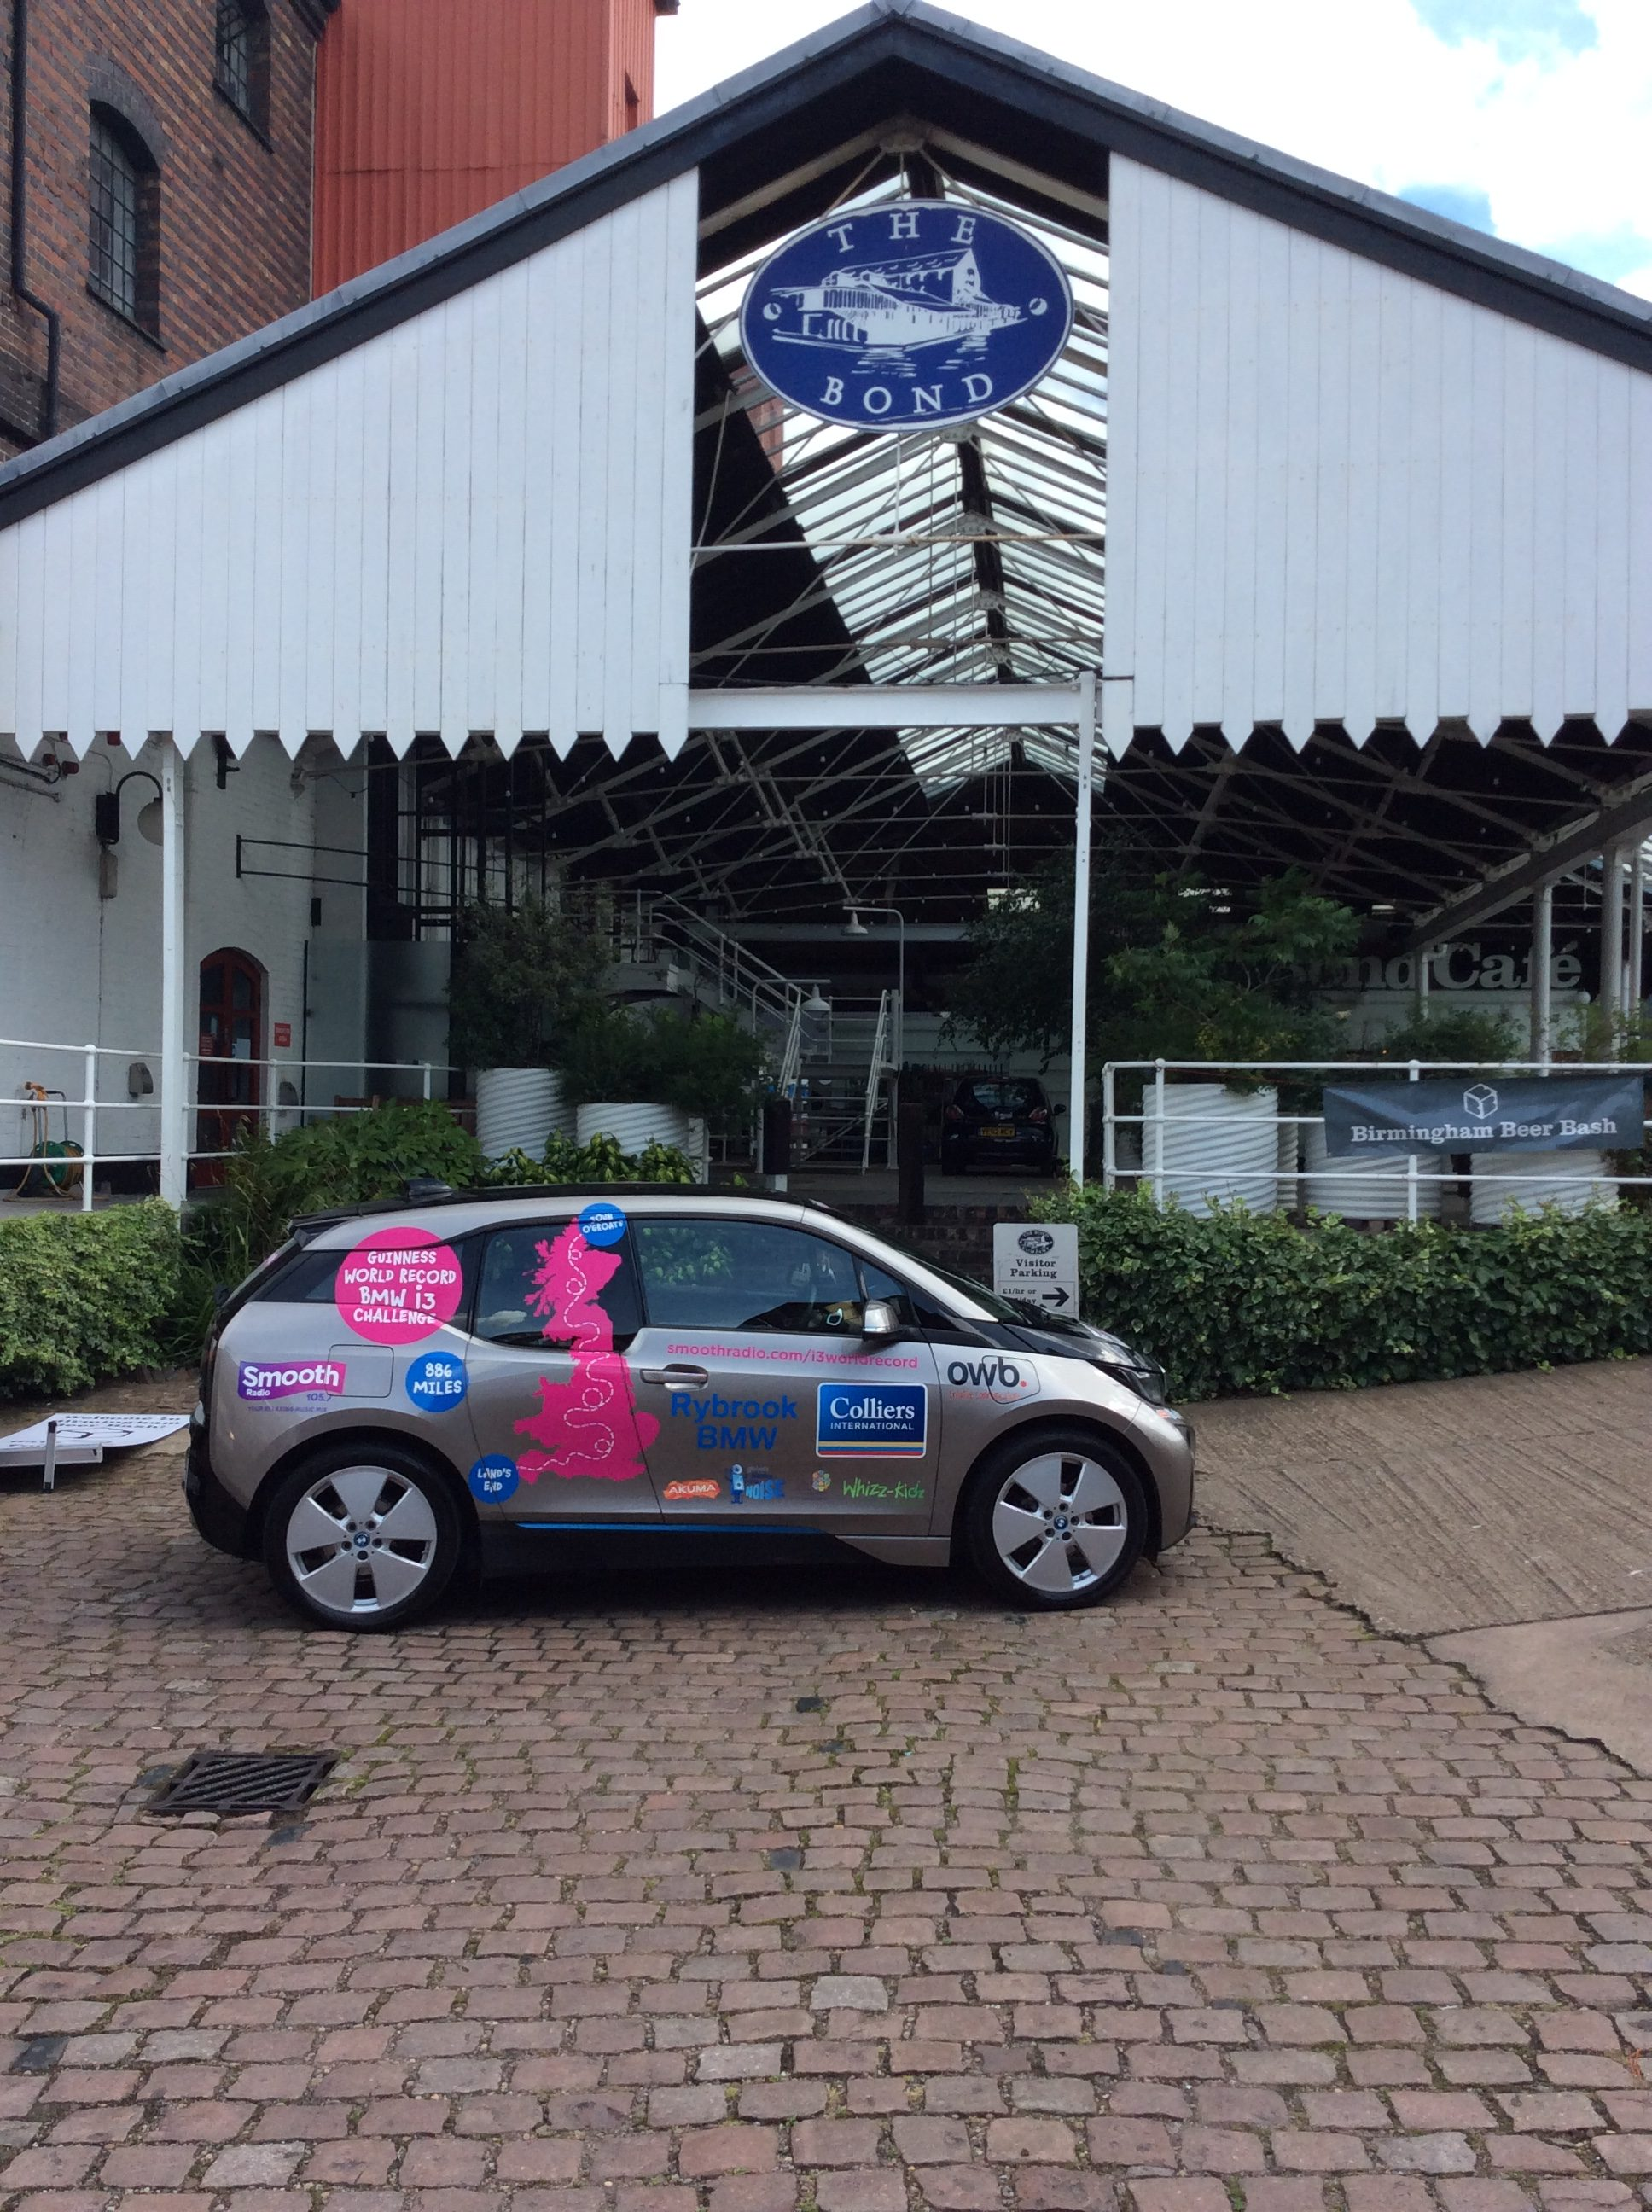 OWB is proud to support BMW i3 World Record